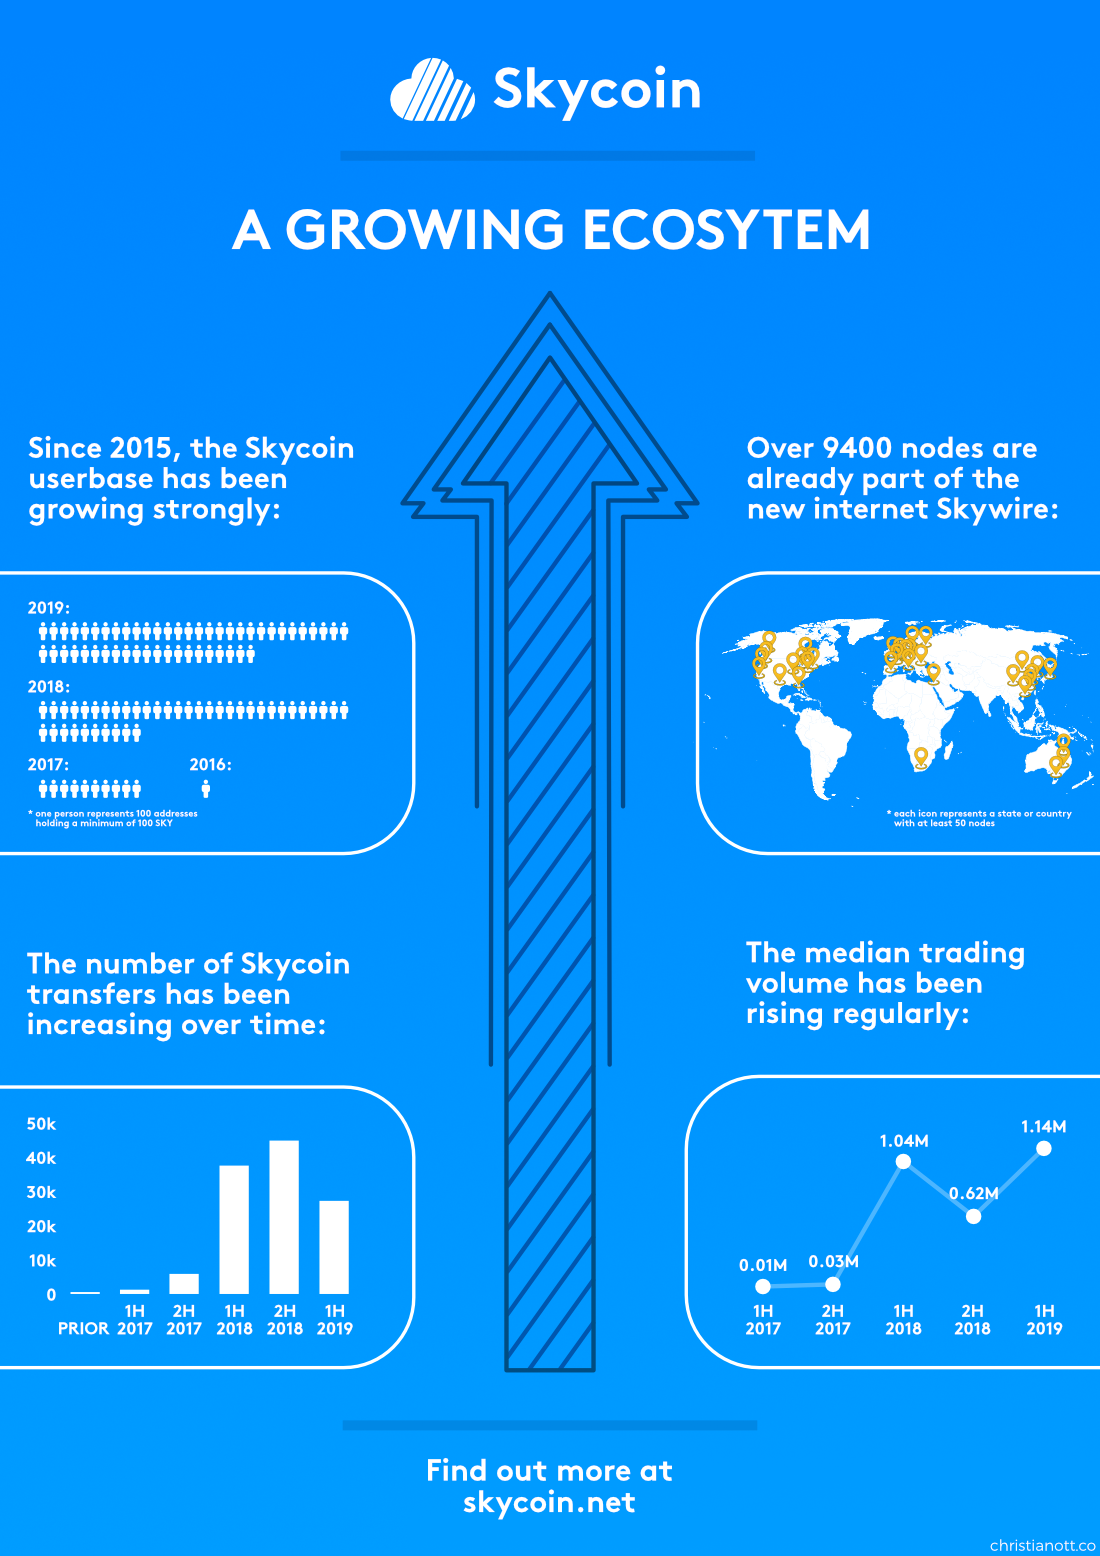 Skycoin - A growing ecosystem